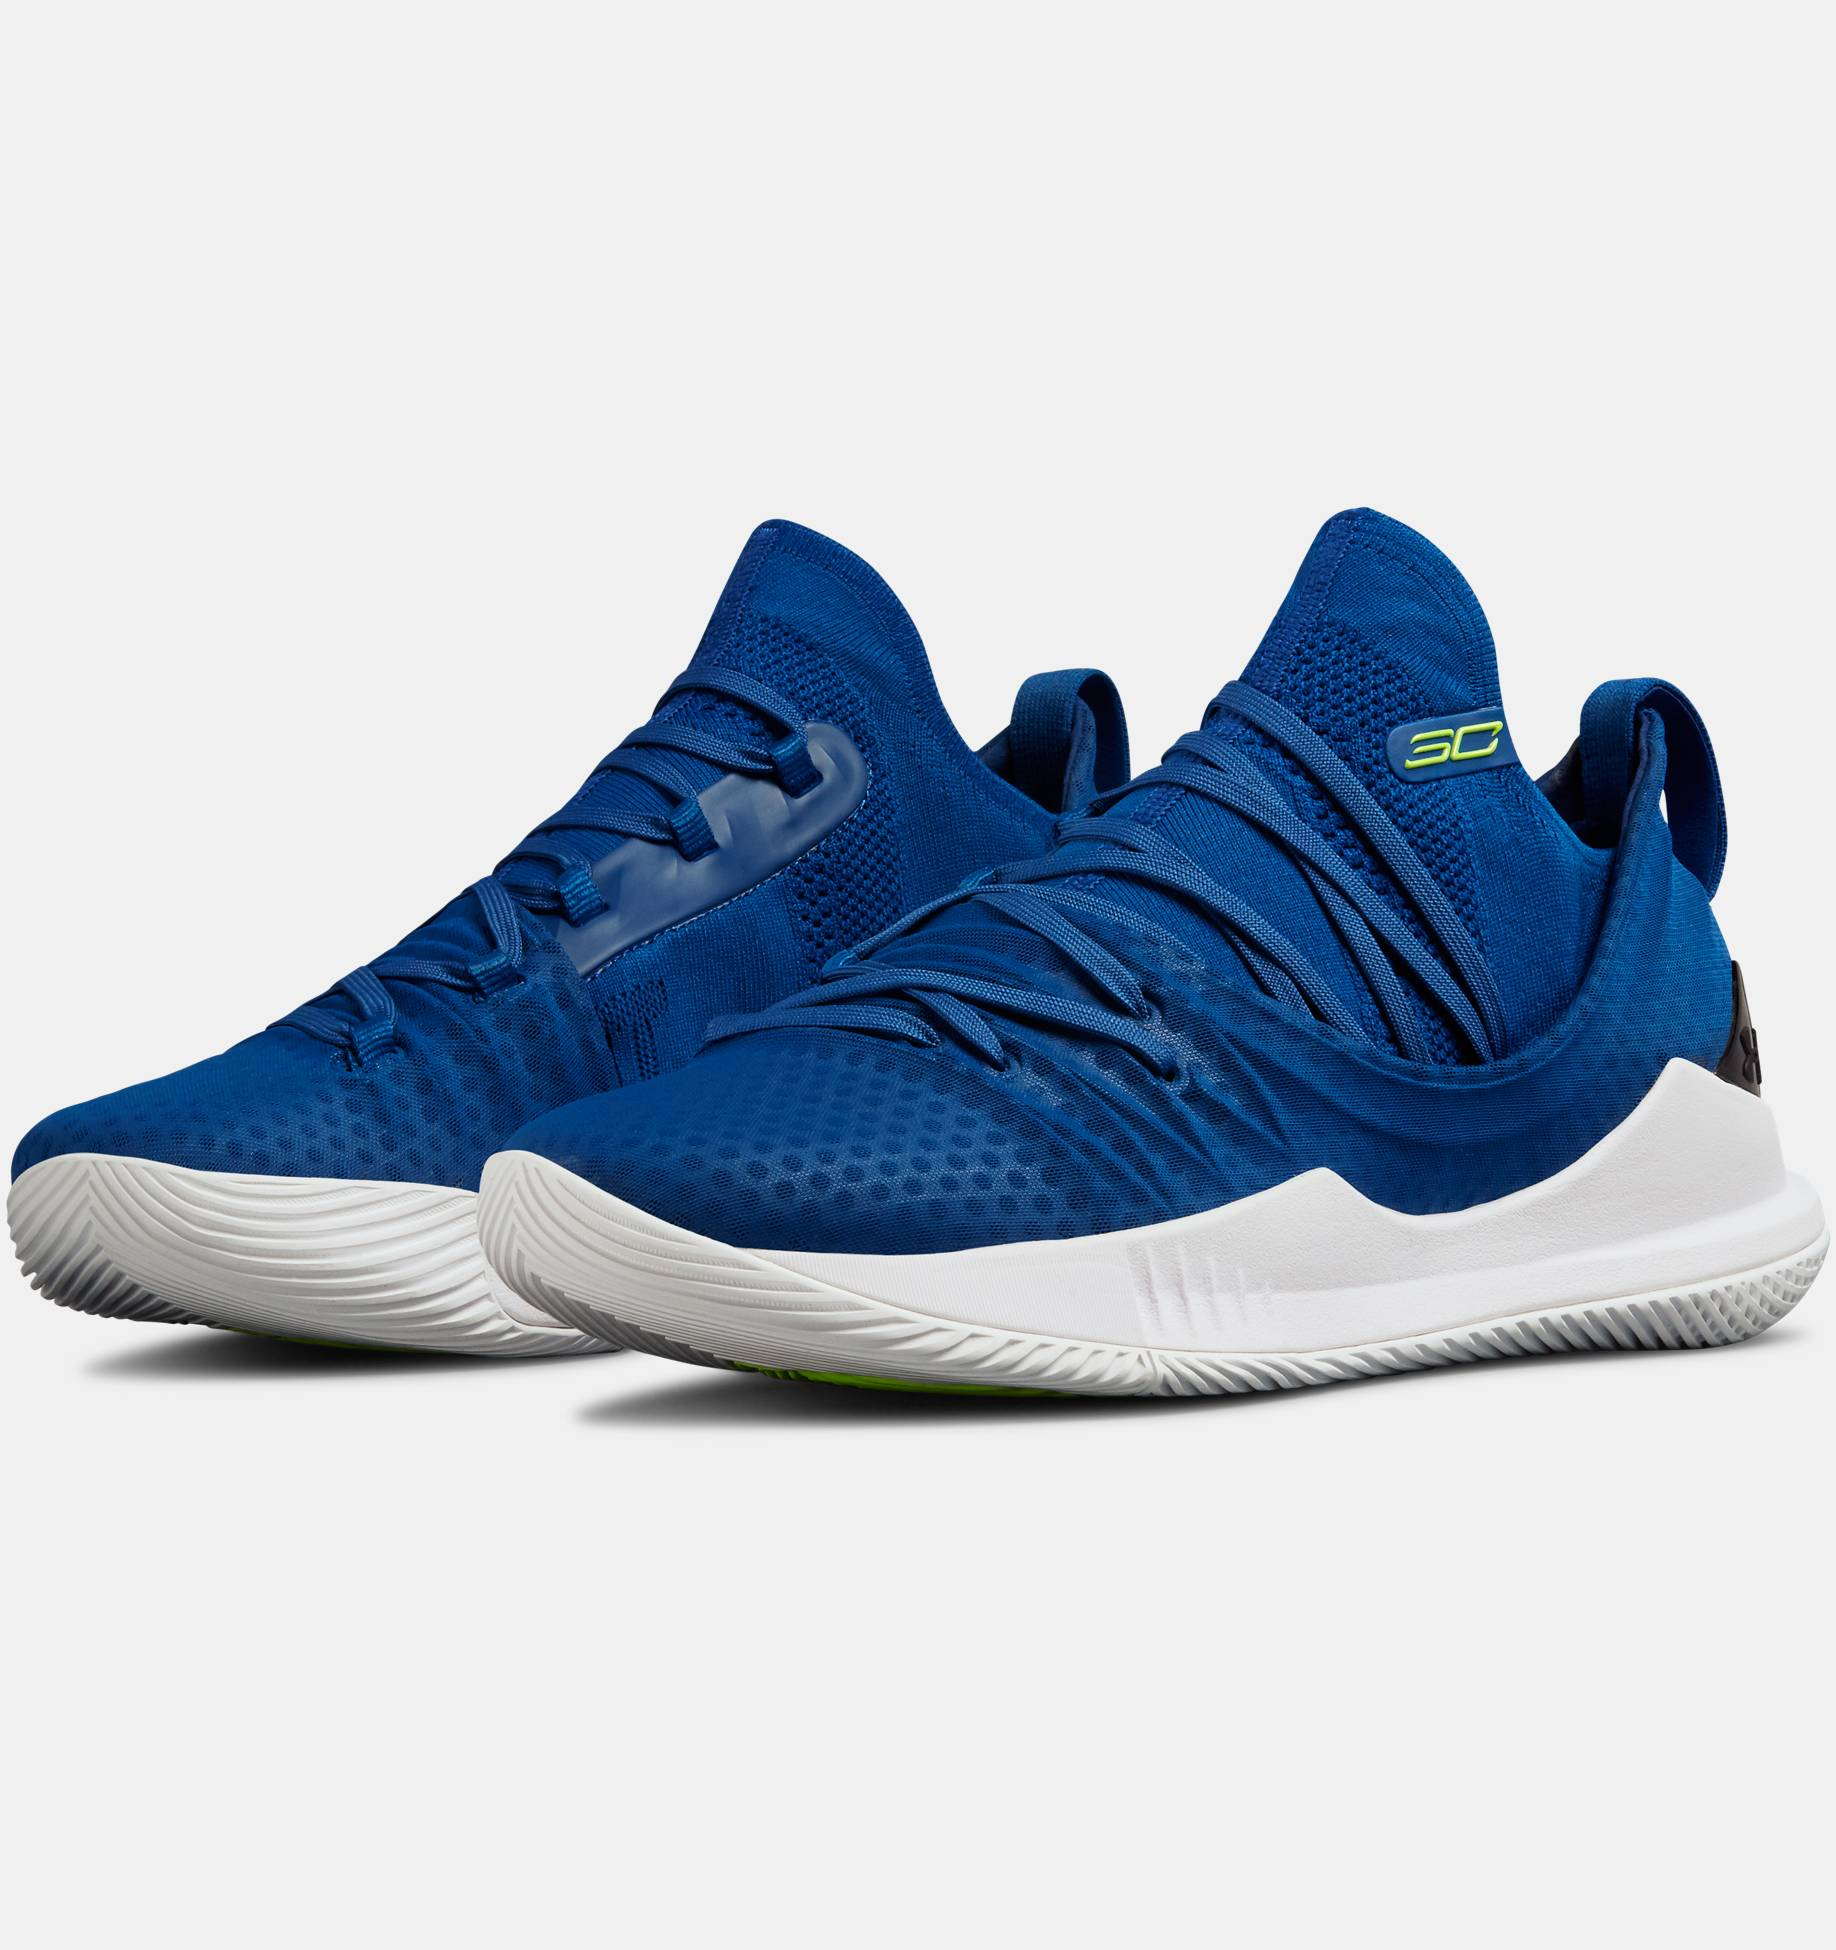 curry 5 moroccan blue stephen curry